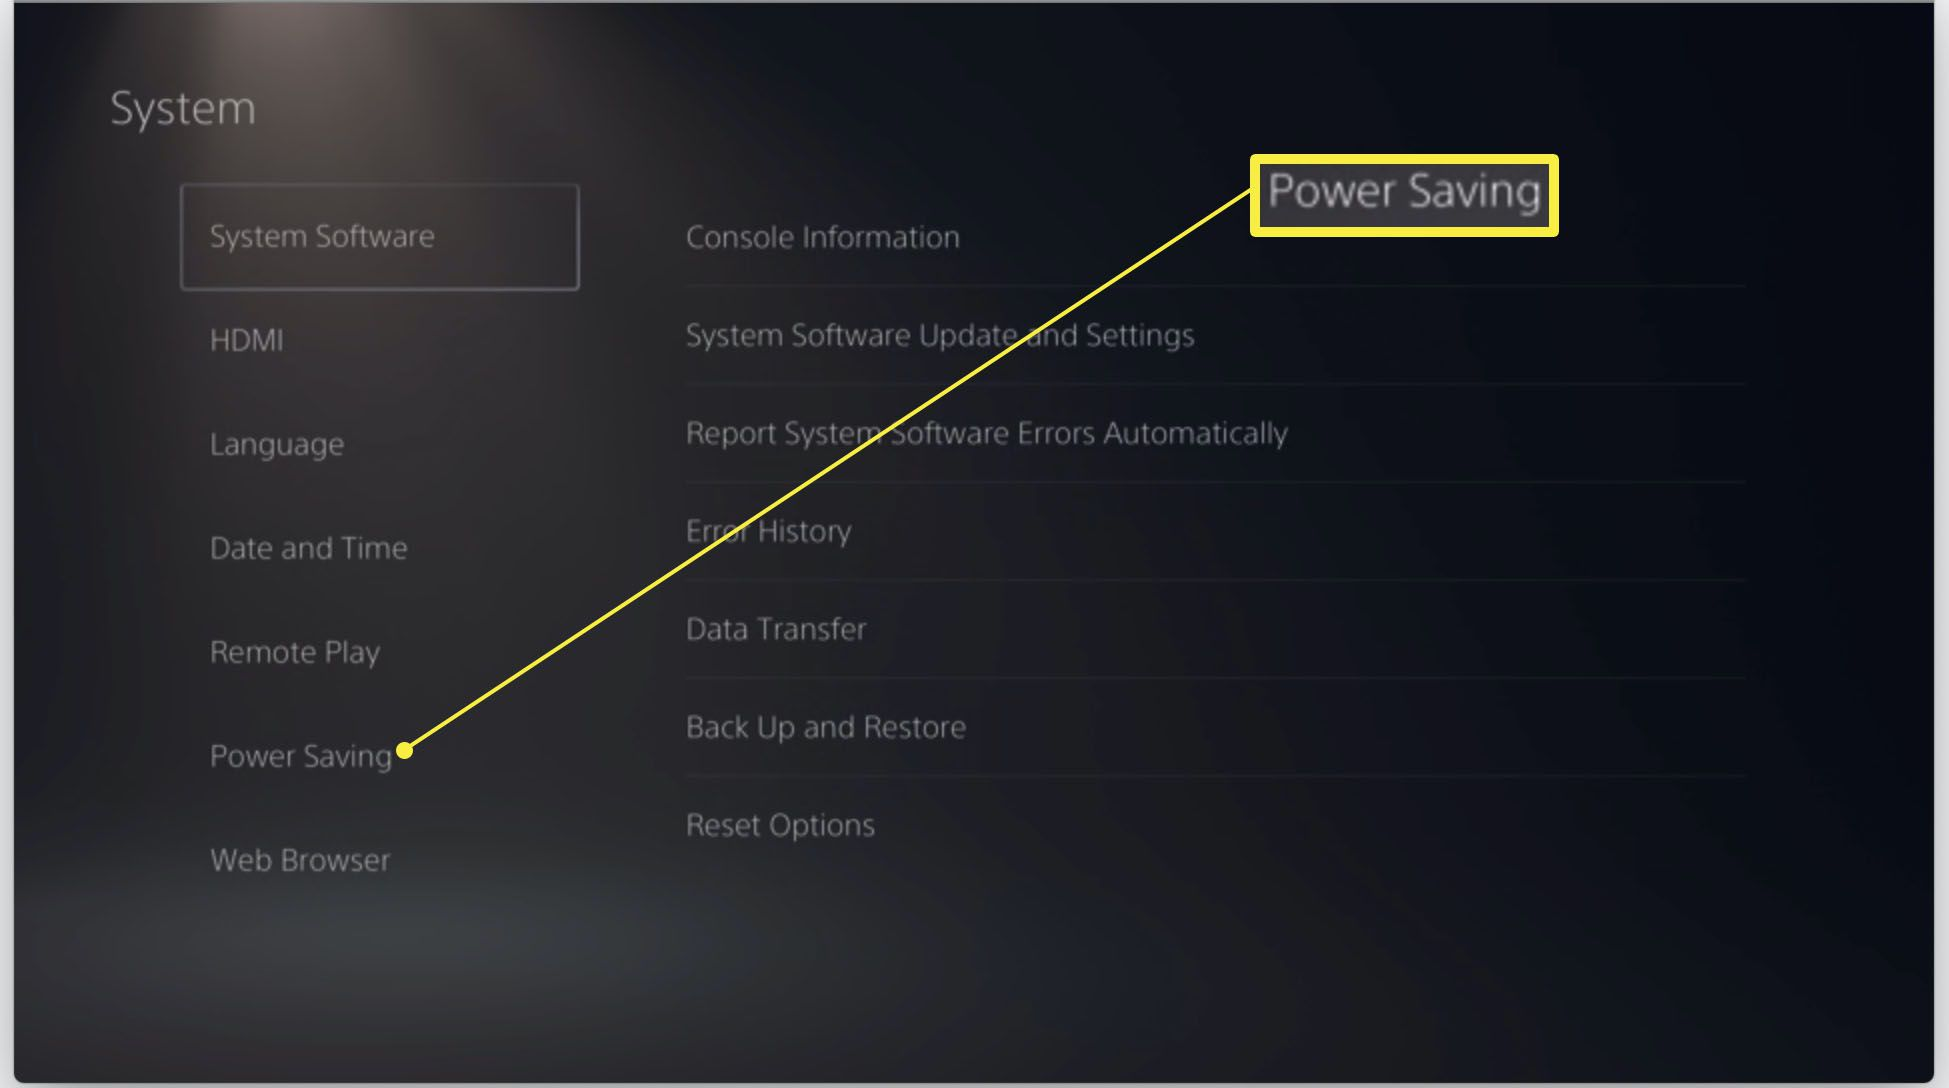 PlayStation 5 Settings with Power Saving highlighted